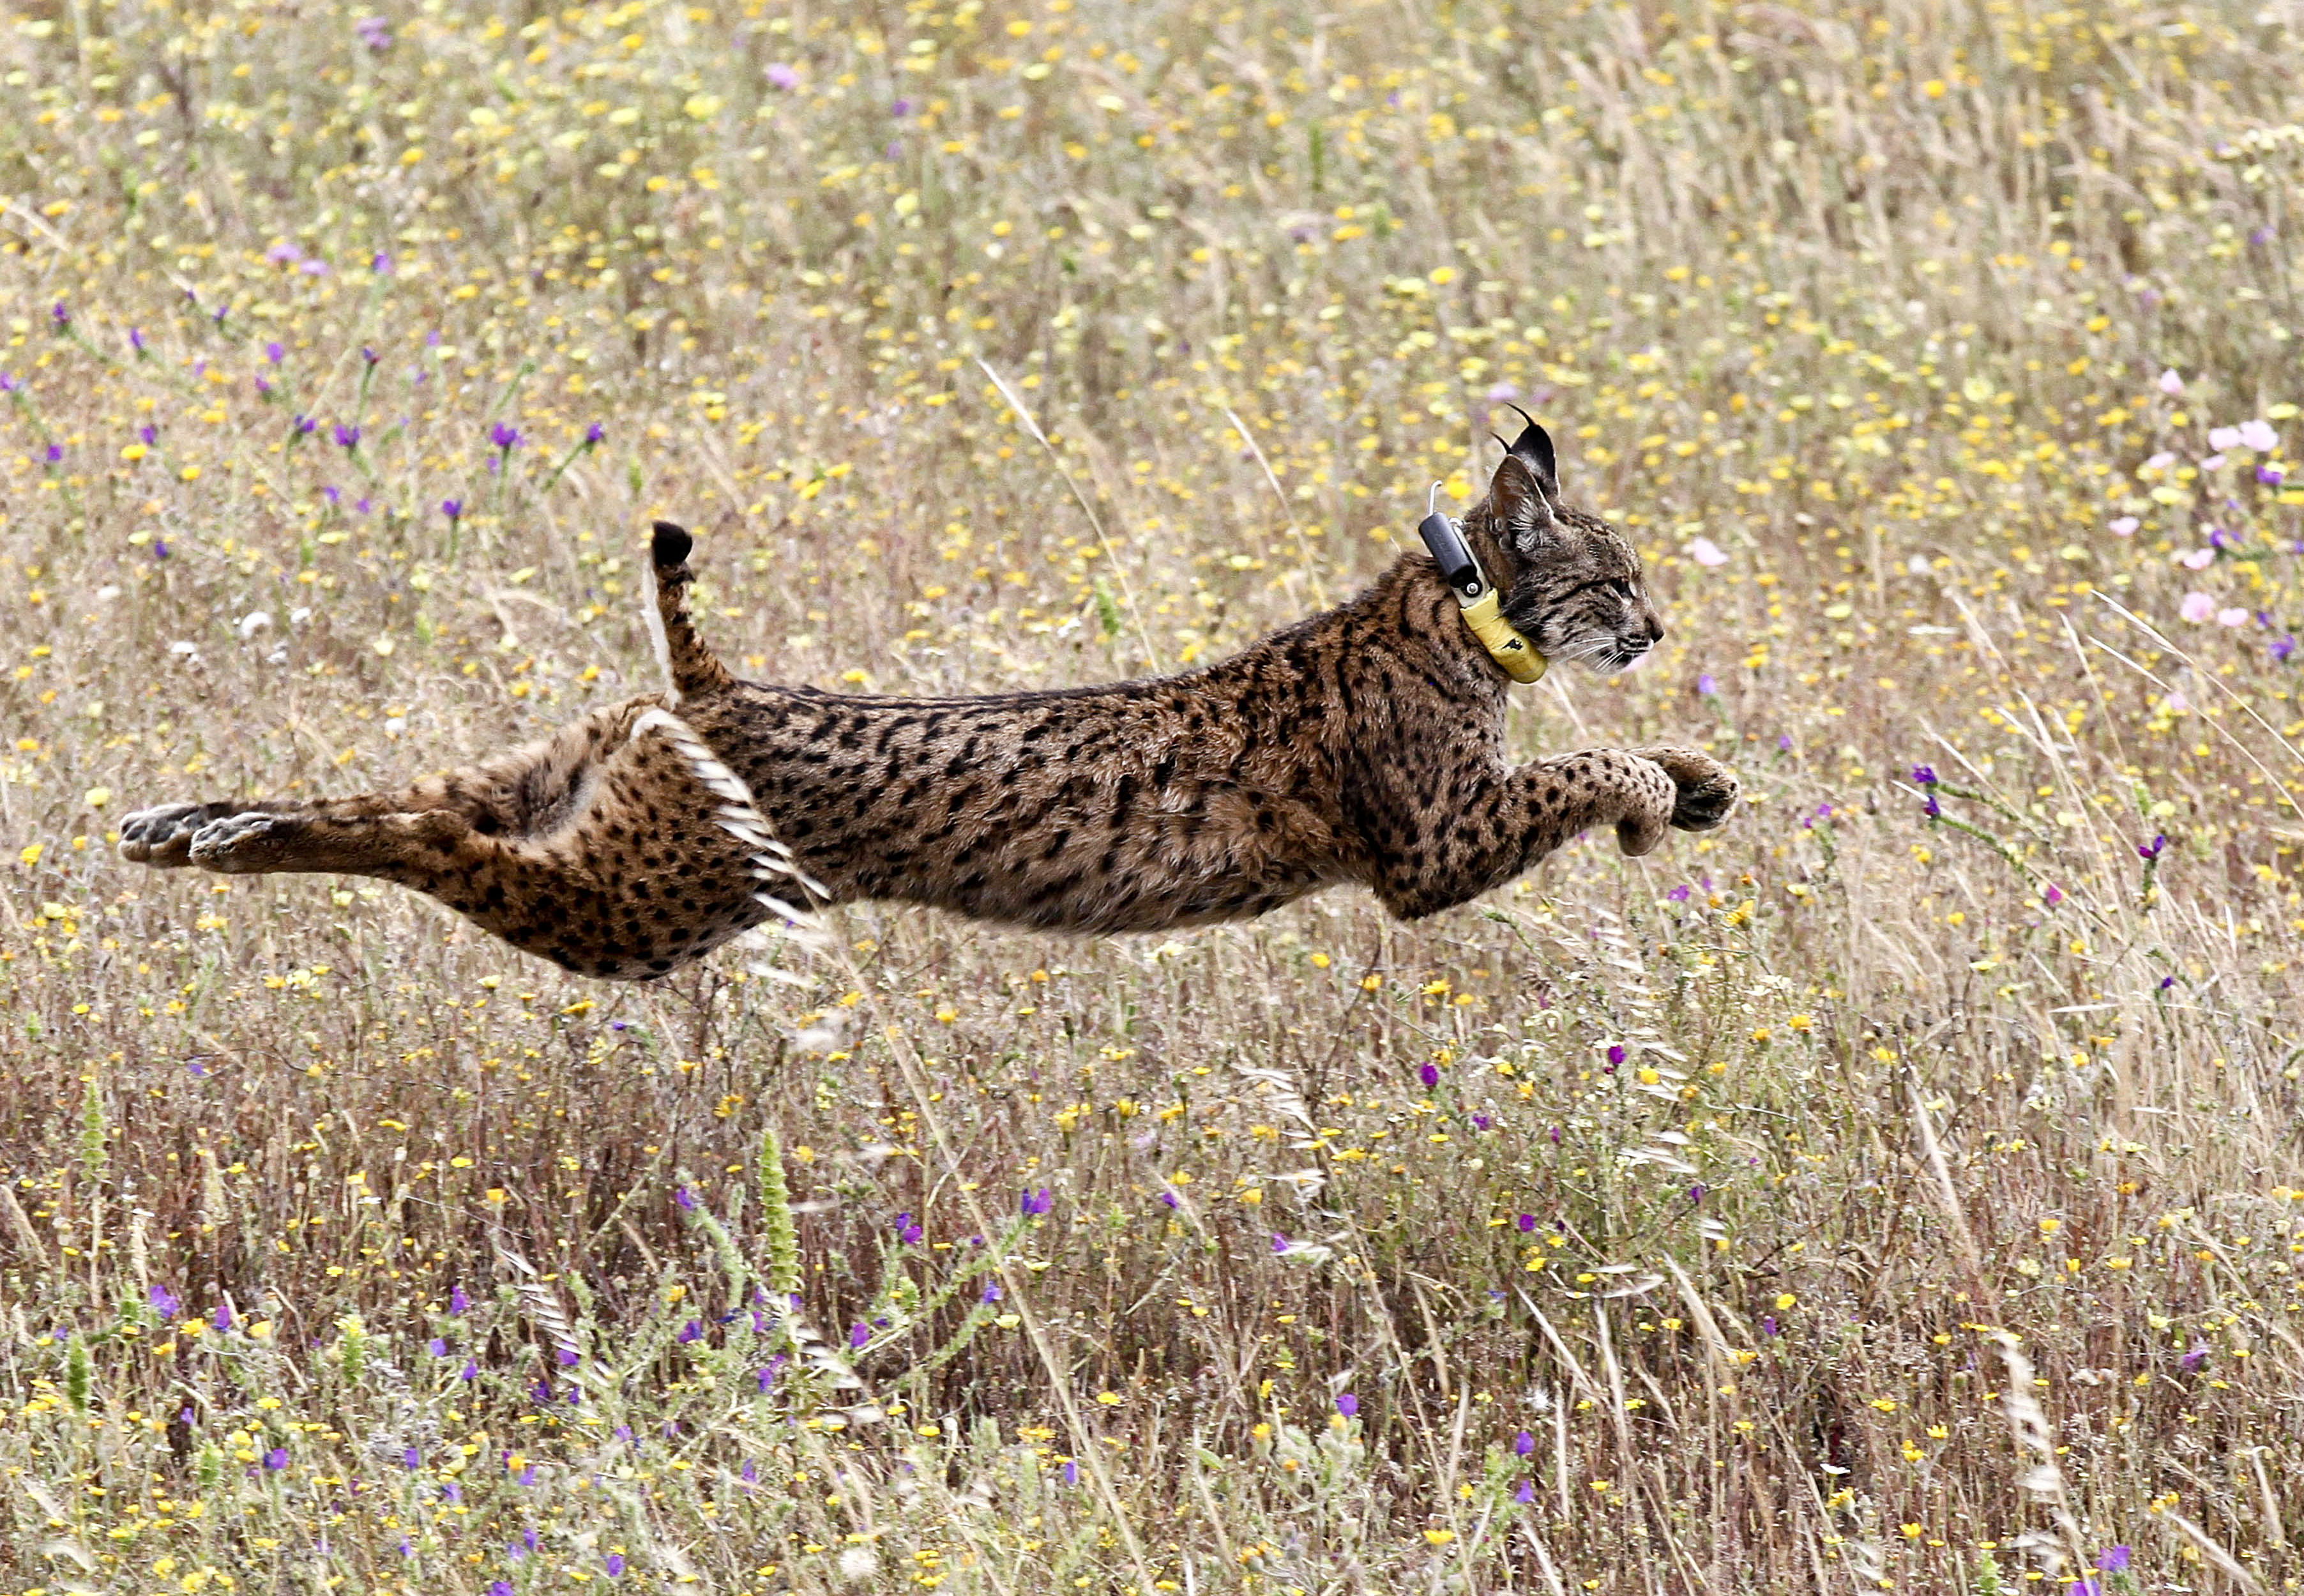 An Iberian lynx named Mistral jumps in a field after being released by Portugal's Minister of Environment Joao Matos Fernandes and others in the Mount Milhouro region in Mertola, Portugal, on May 13, 2016.